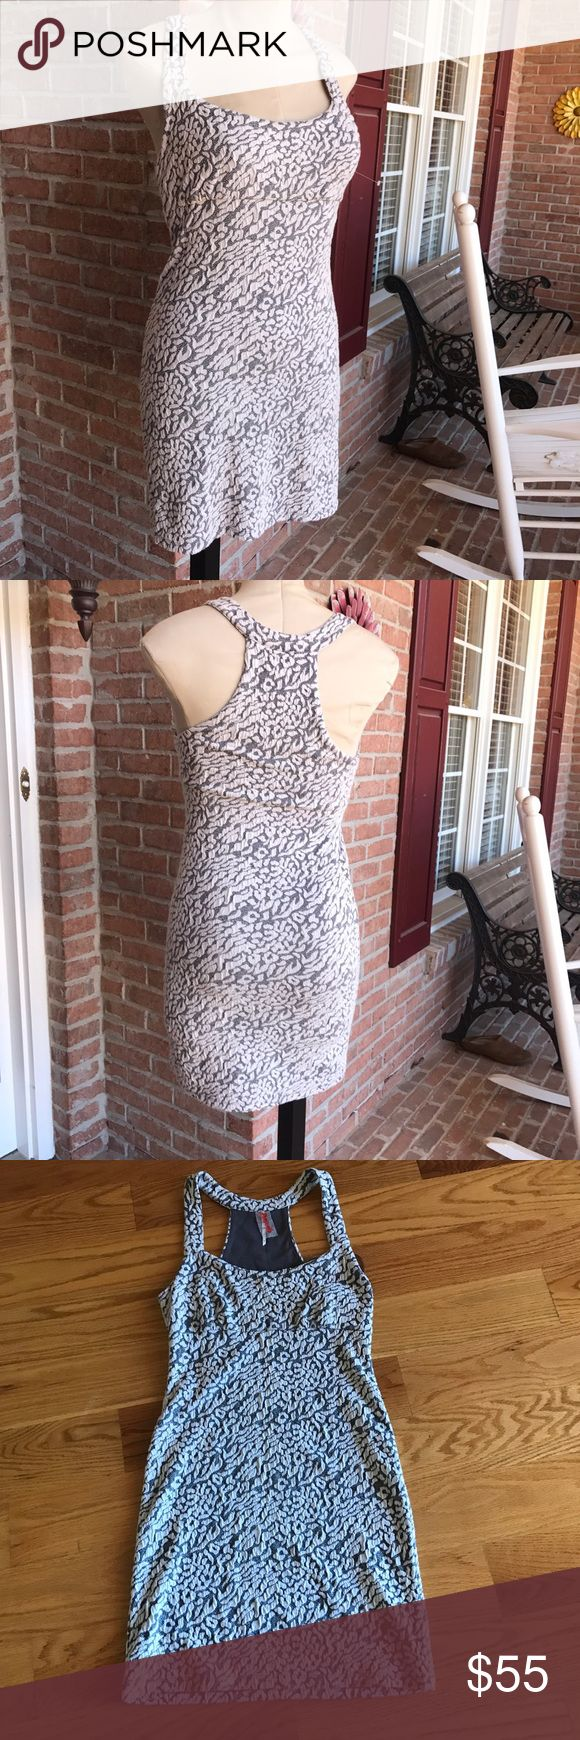 Free people mini dress Get ready for Spring ladies! This Free People dress is to die for, it hugs your curves and makes you look spectacular! Free People Dresses Mini